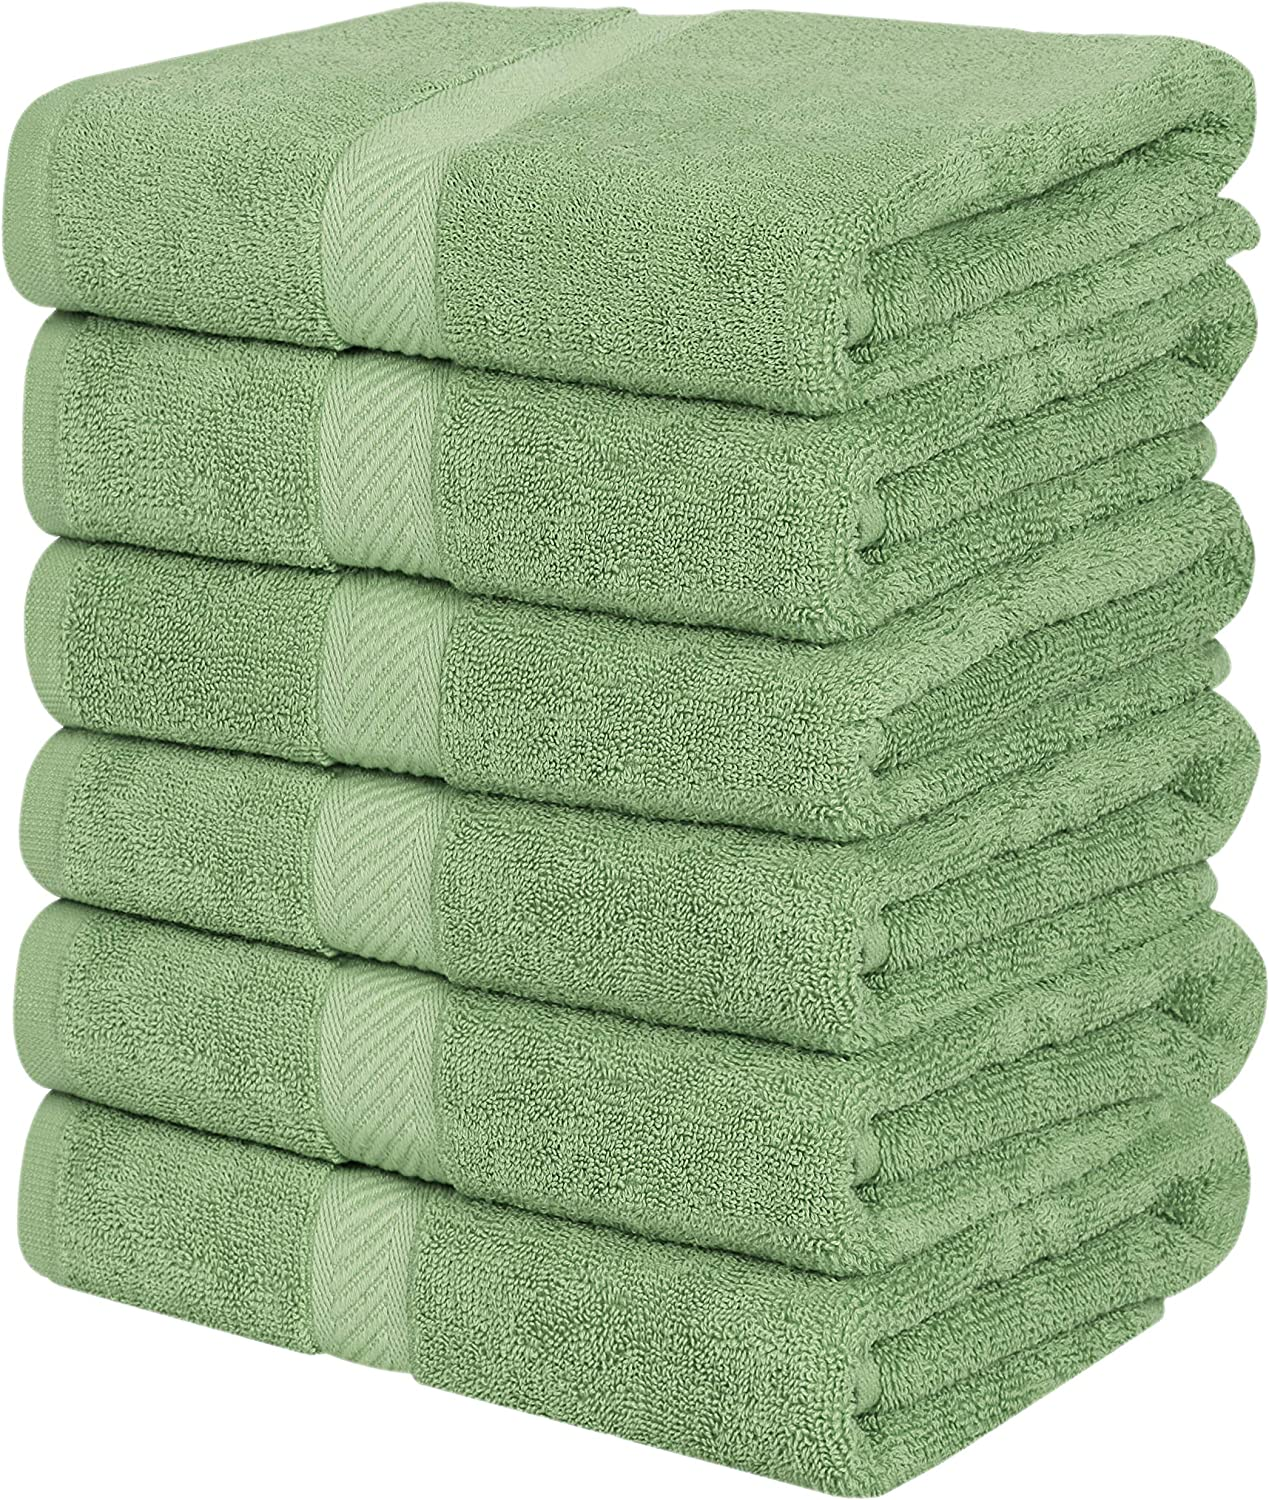 Utopia Towels Medium Cotton Towels, Sage Green, 24 x 48 Inches Towels for Pool, Spa, and Gym Lightweight and Highly Absorbent Quick Drying Towels, (Pack of 6)